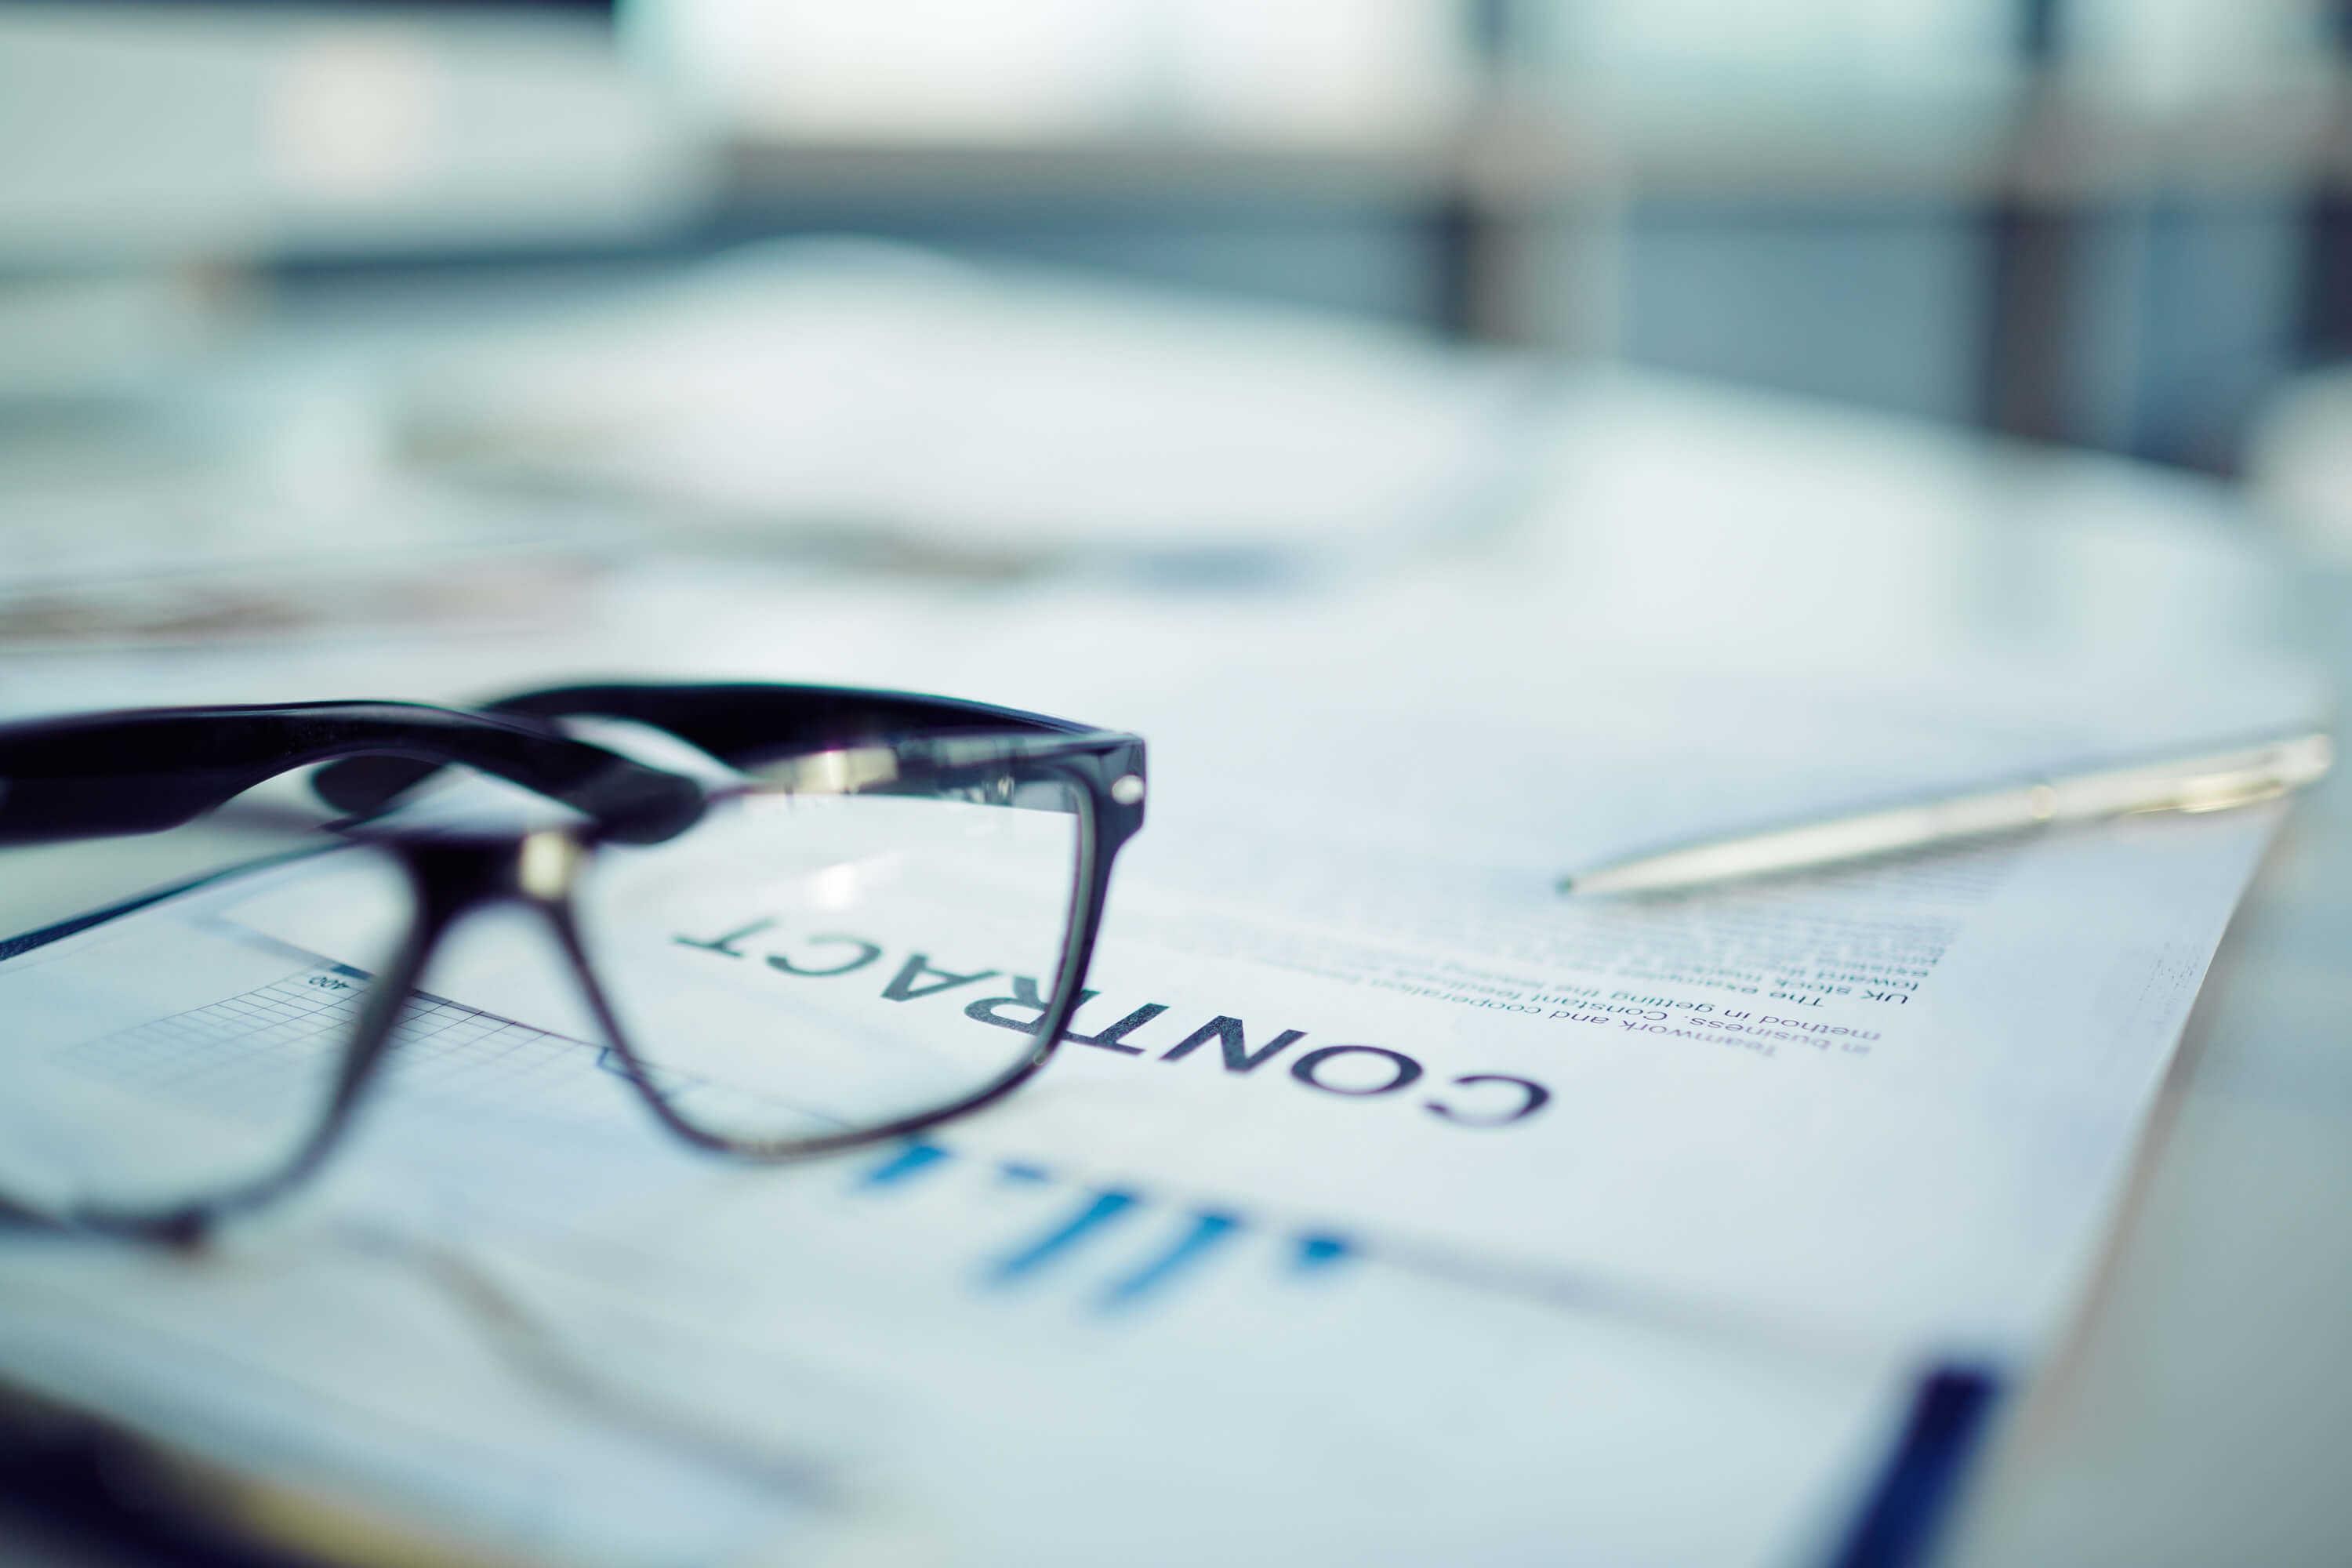 Contract and Glasses image